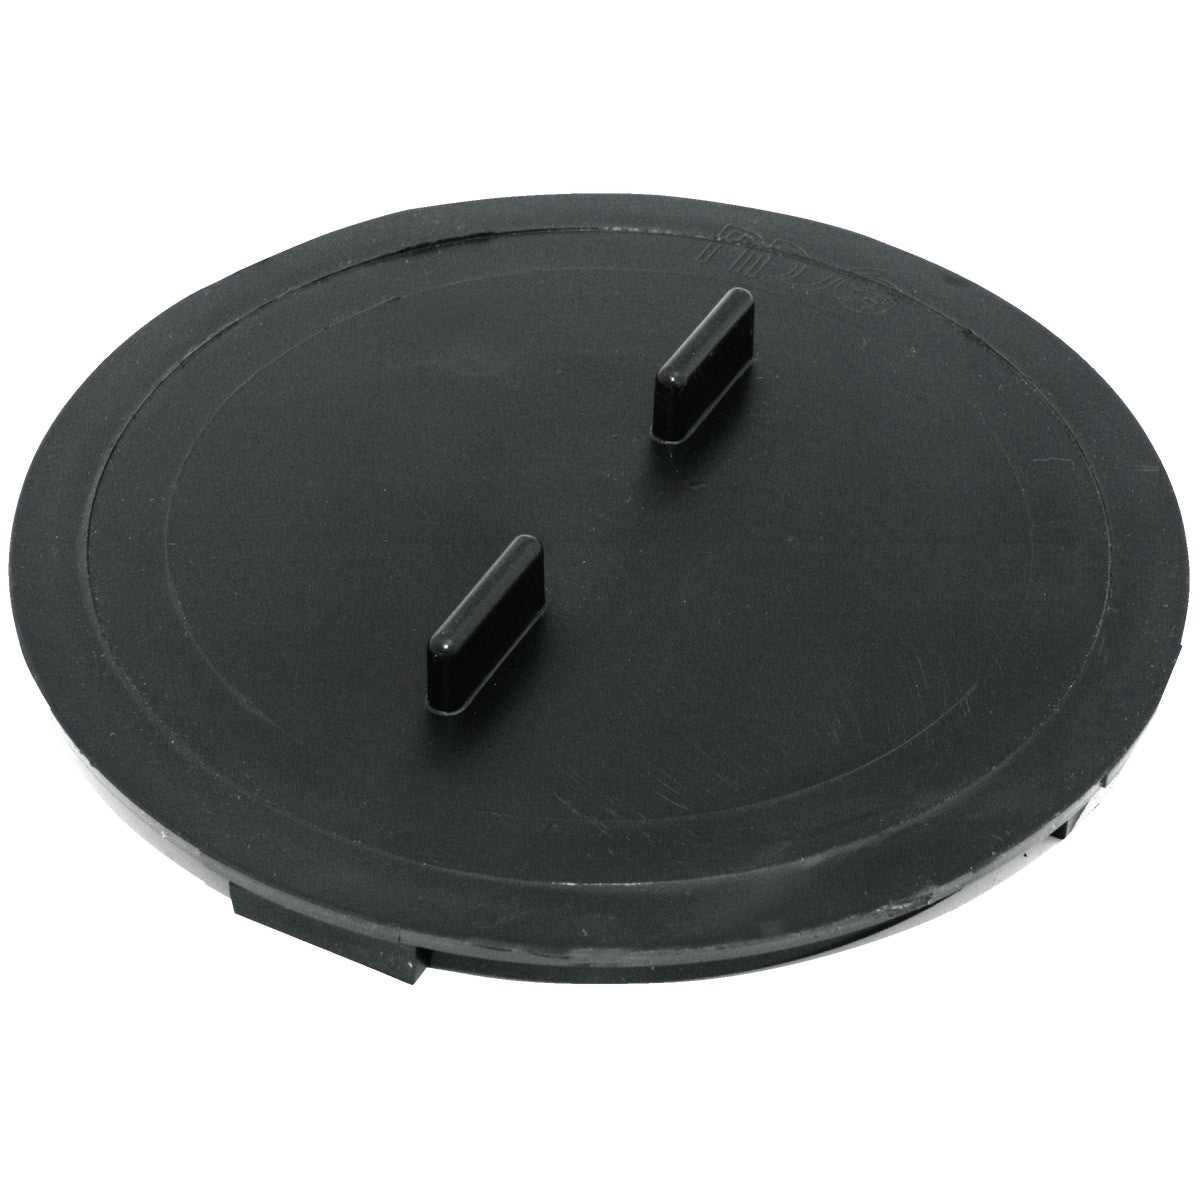 CATCH BASIN PLUG - 1206 by National Diversified